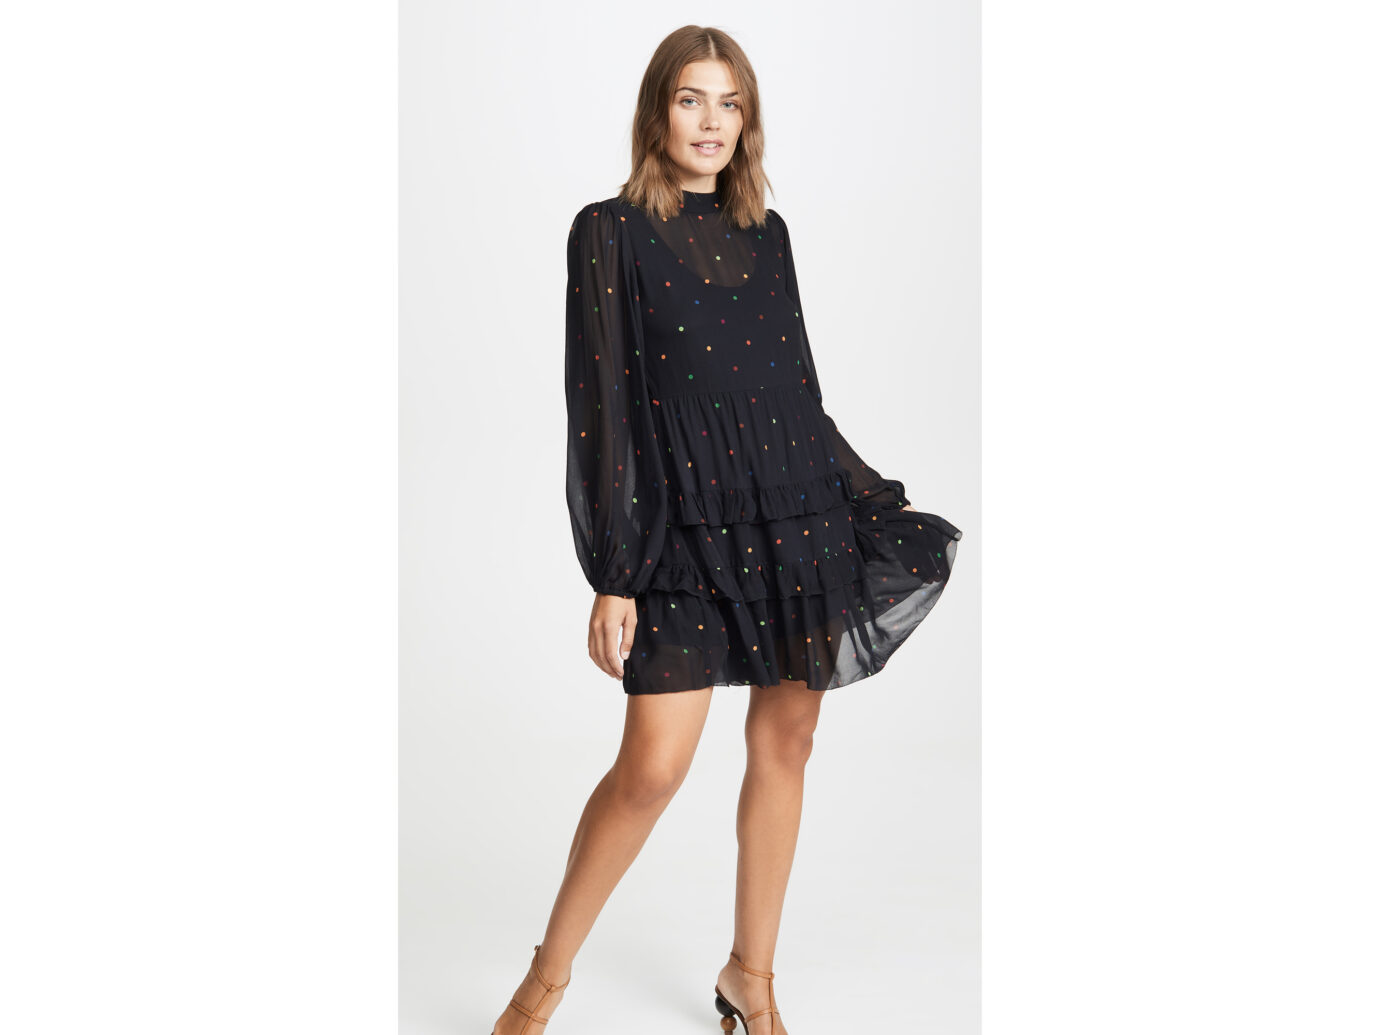 FARM Rio Black Dots Mini Dress